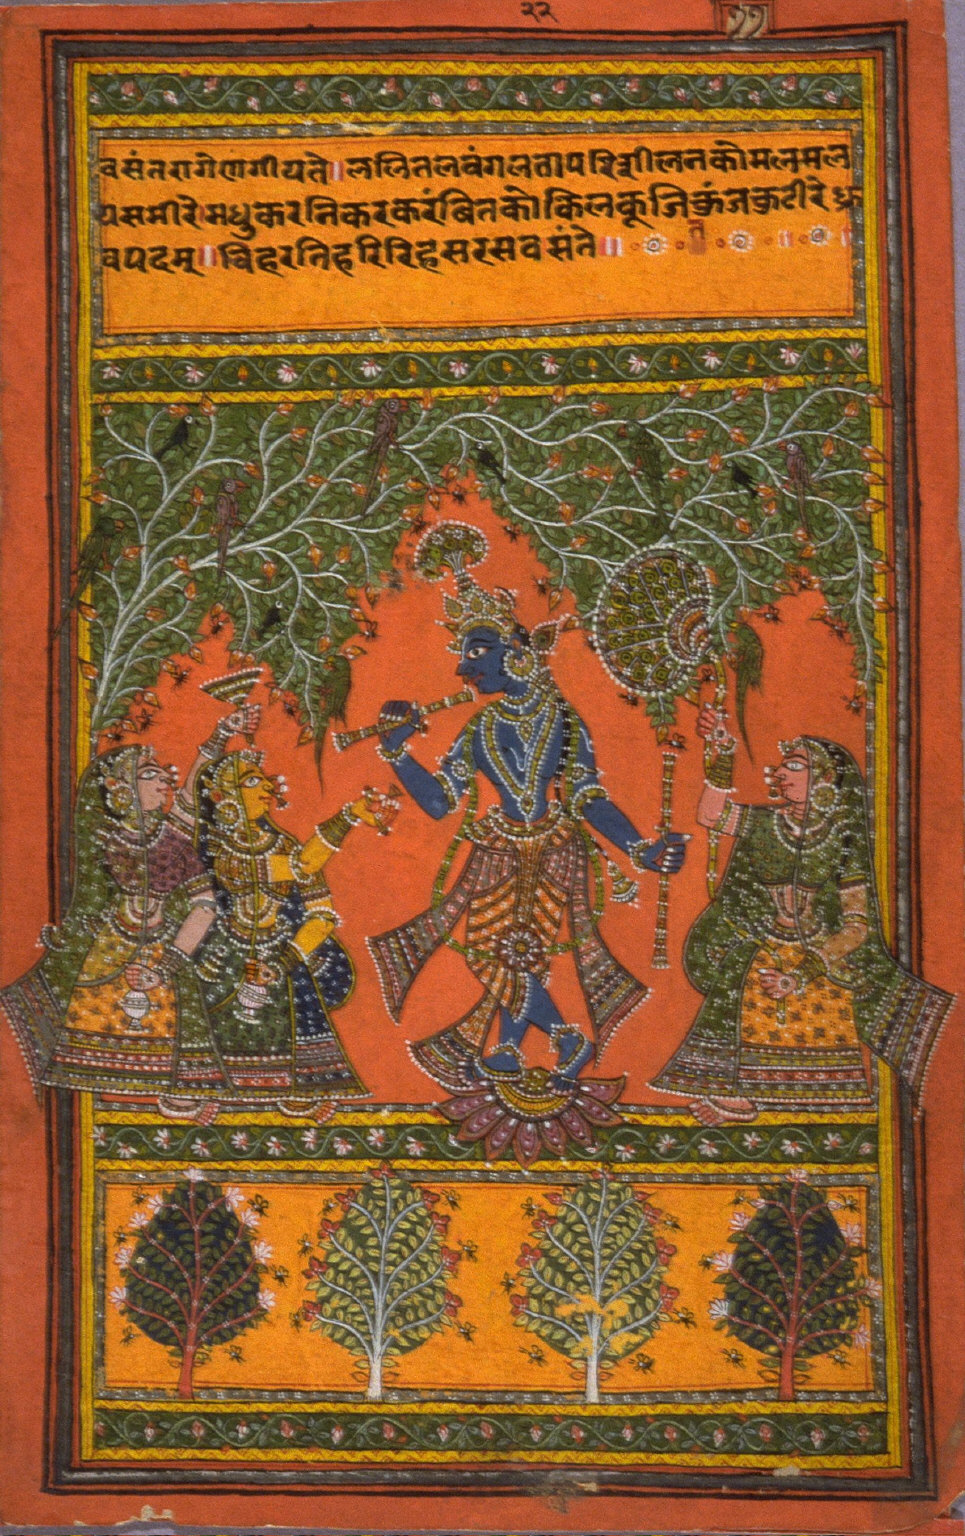 Illustration for Canto 1, verse 27 of Jayadevas Gita Govinda (Love Song of the Dark Lord)